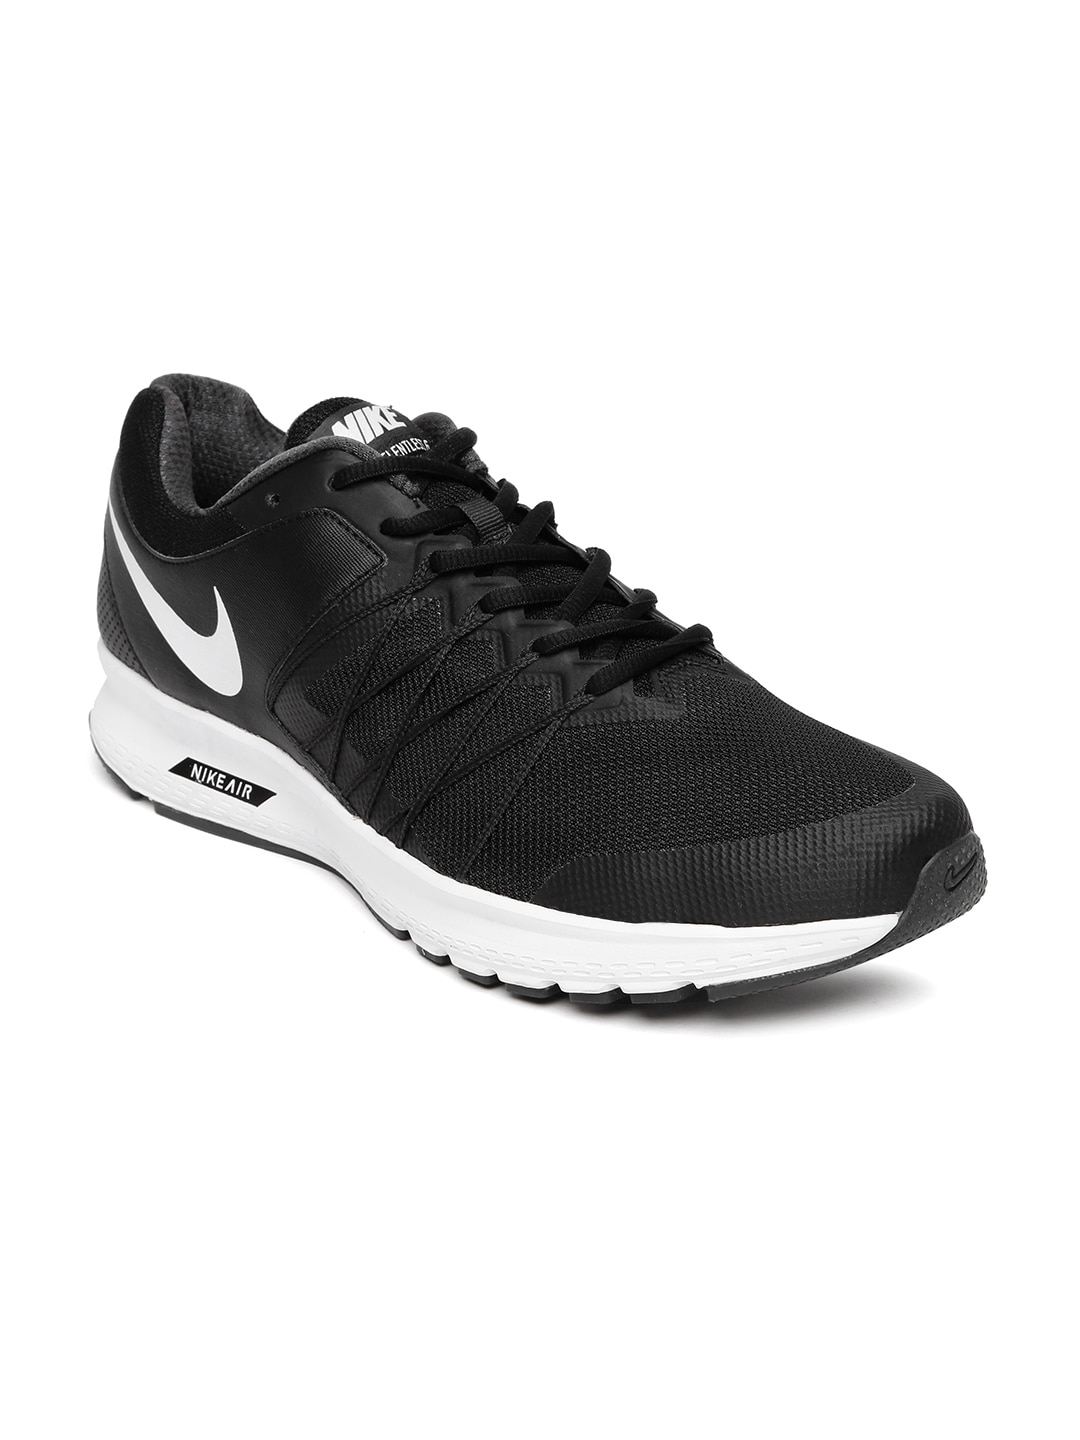 19457910d922a Nike 843881-001 Men Black Air Relentless 6 Msl Running Shoes- Price in India